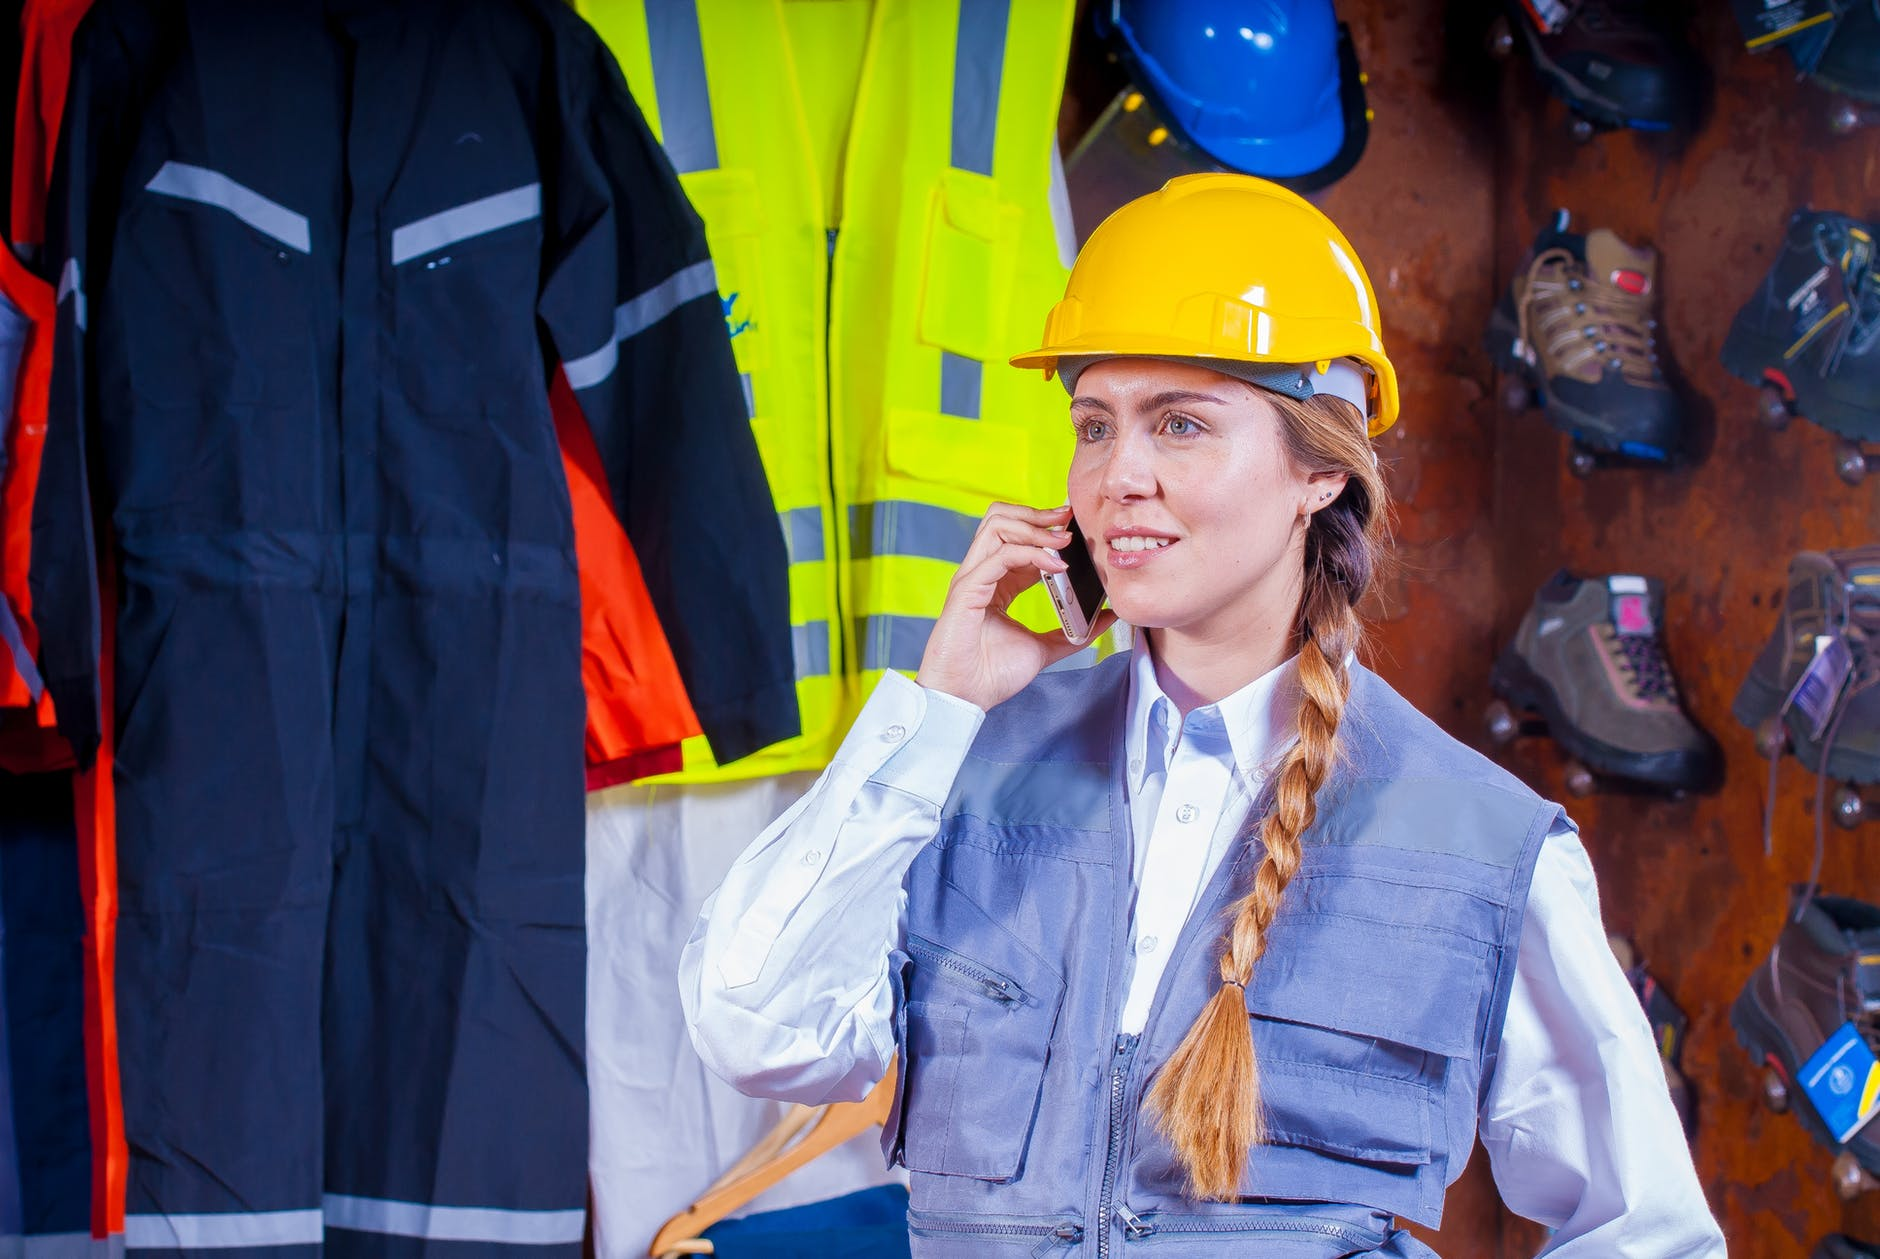 woman in gray vest with yellow hard hat inside room